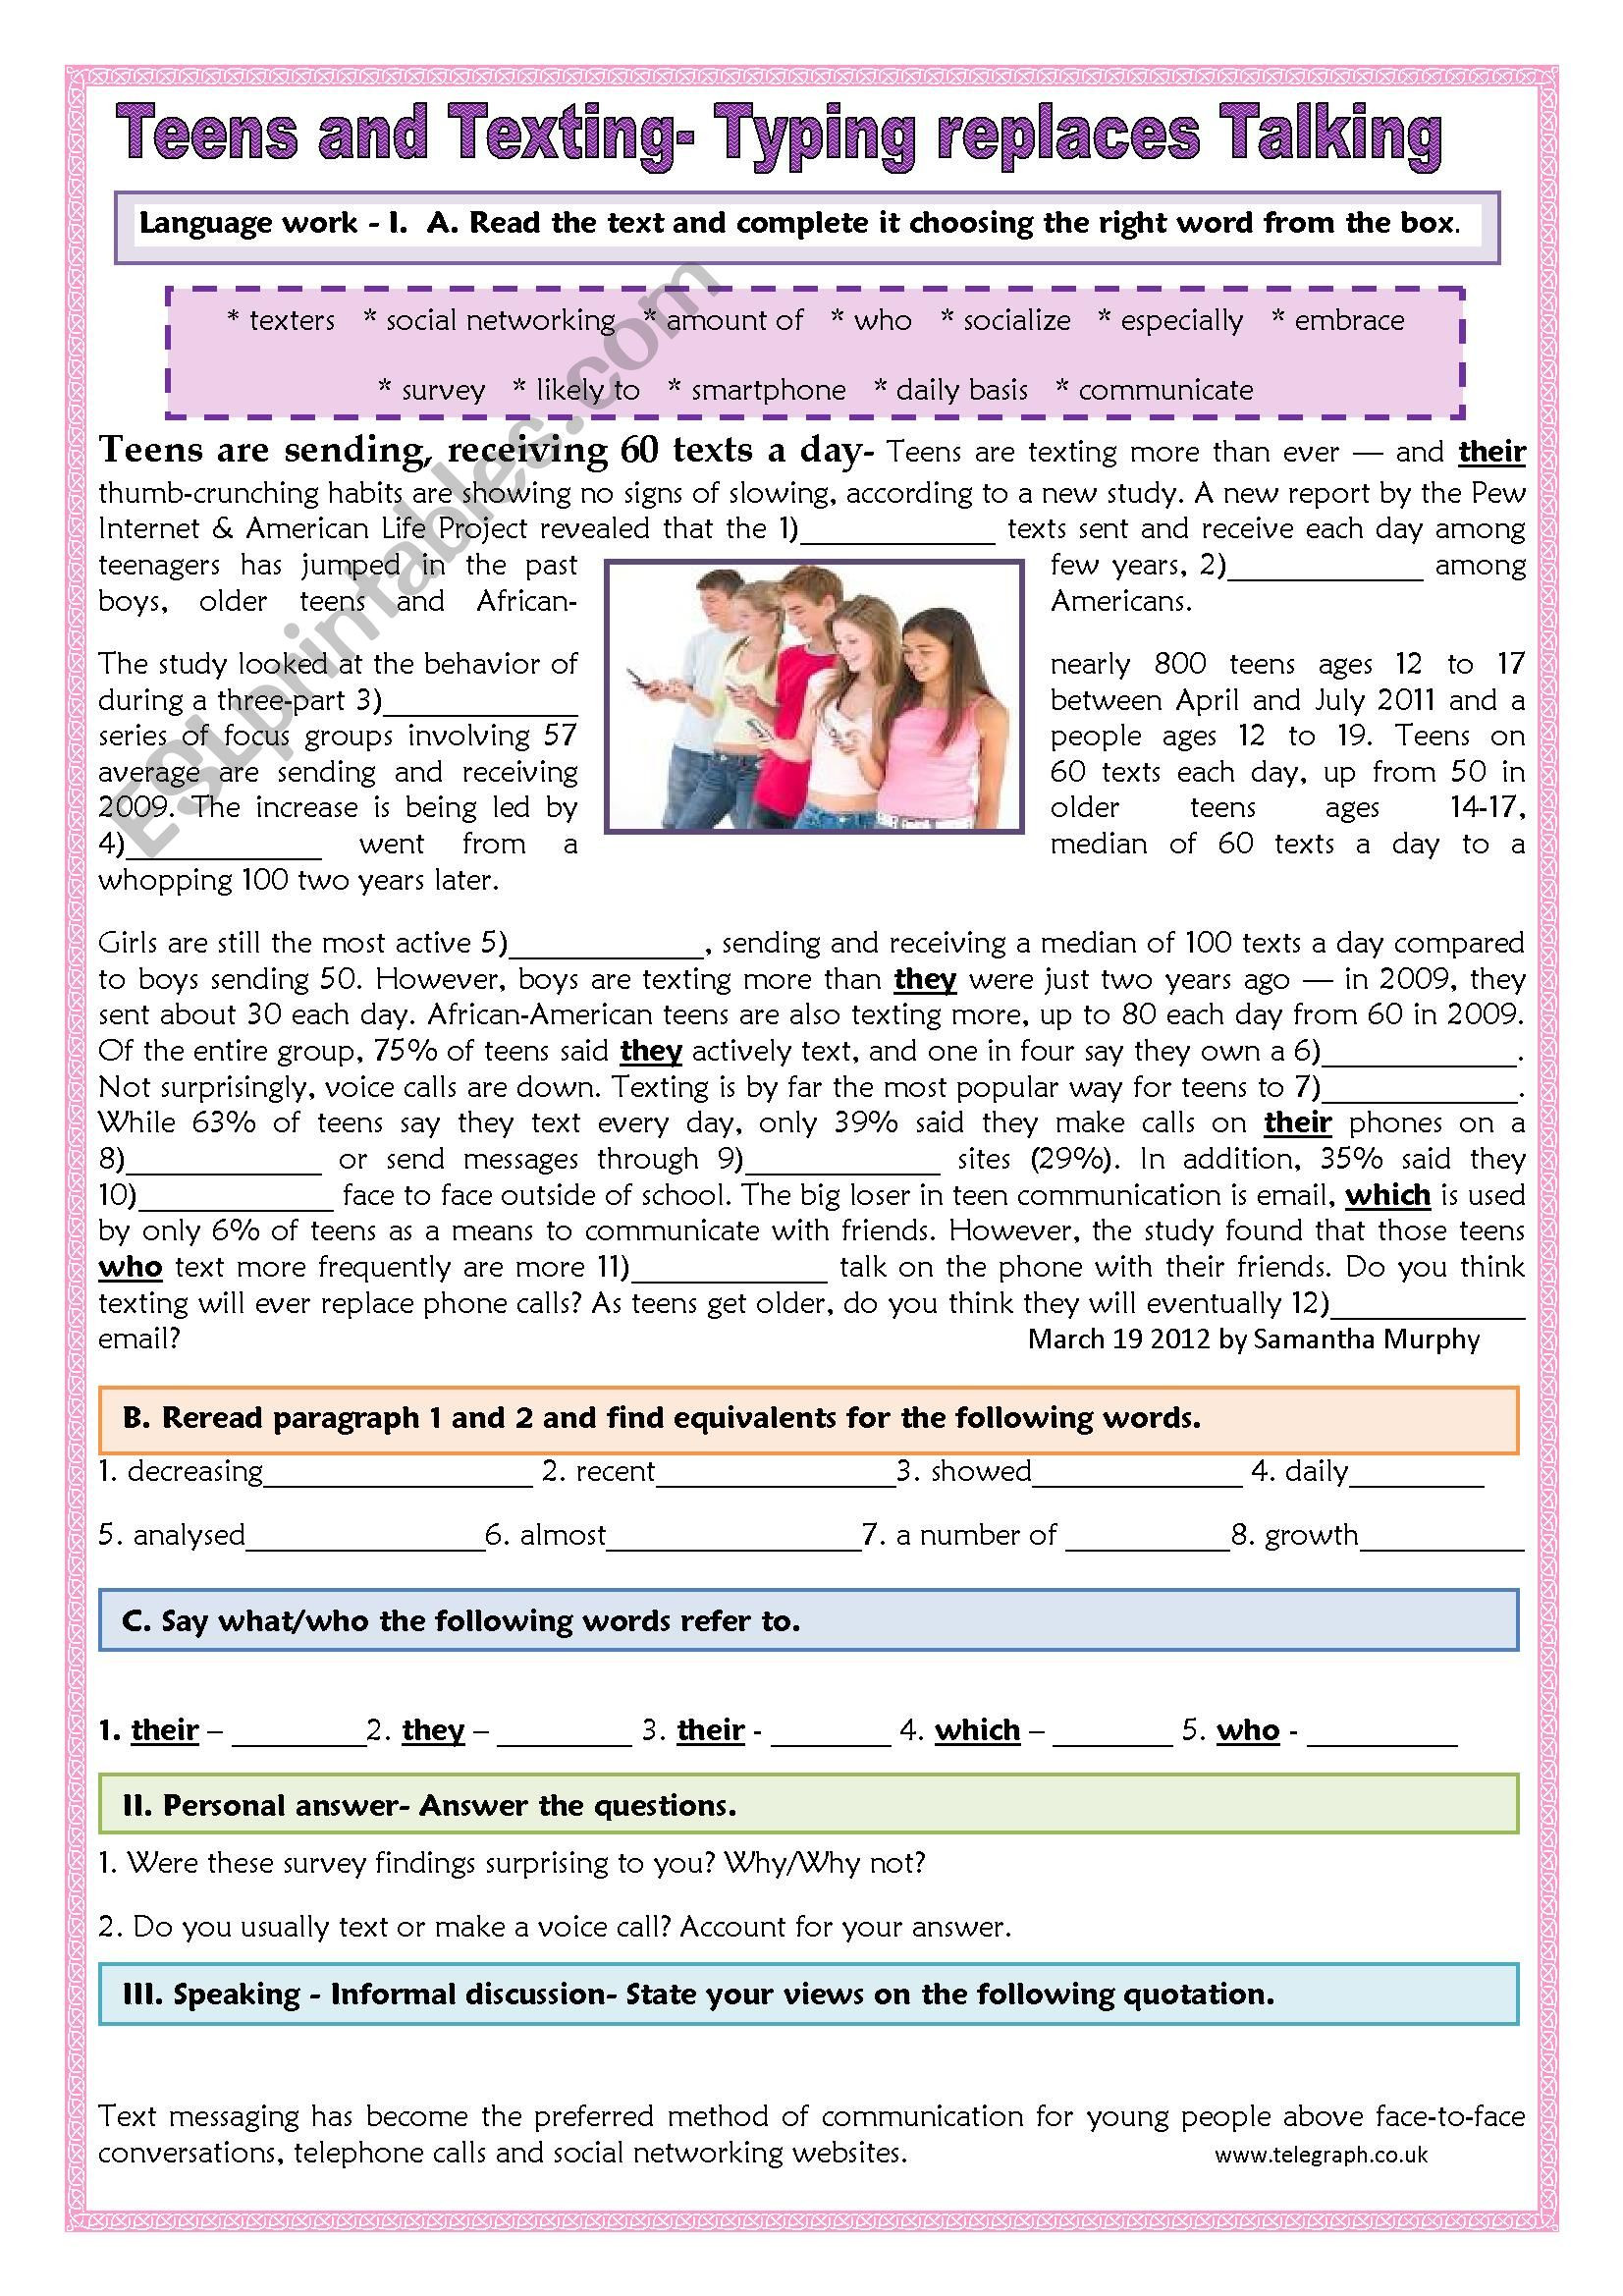 Typing Worksheets Printables Teens and Texting Typing Replaces Talking Esl Worksheet by